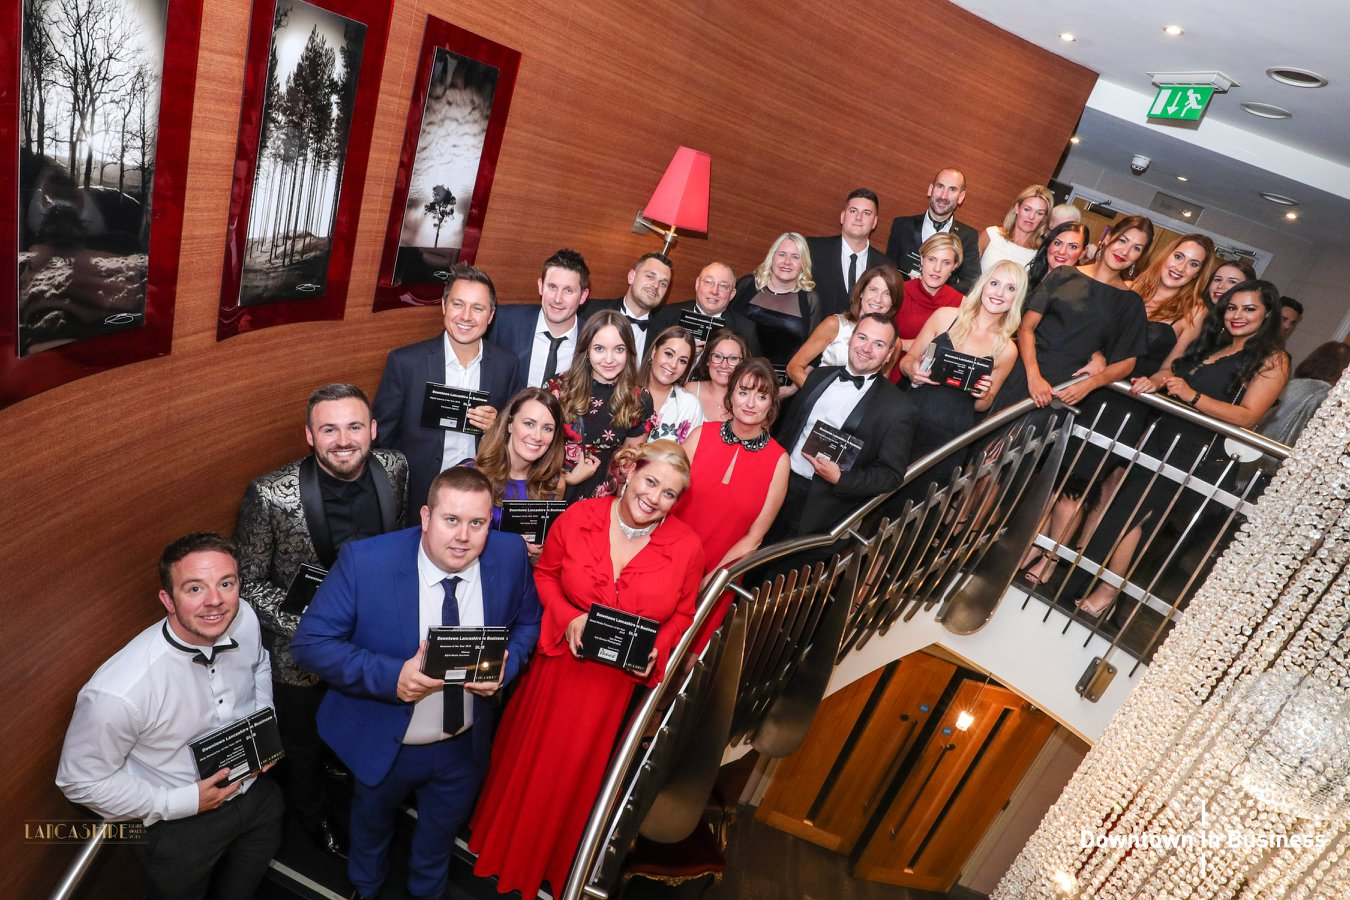 downtown in business lancashire 2018 awards tienda digital